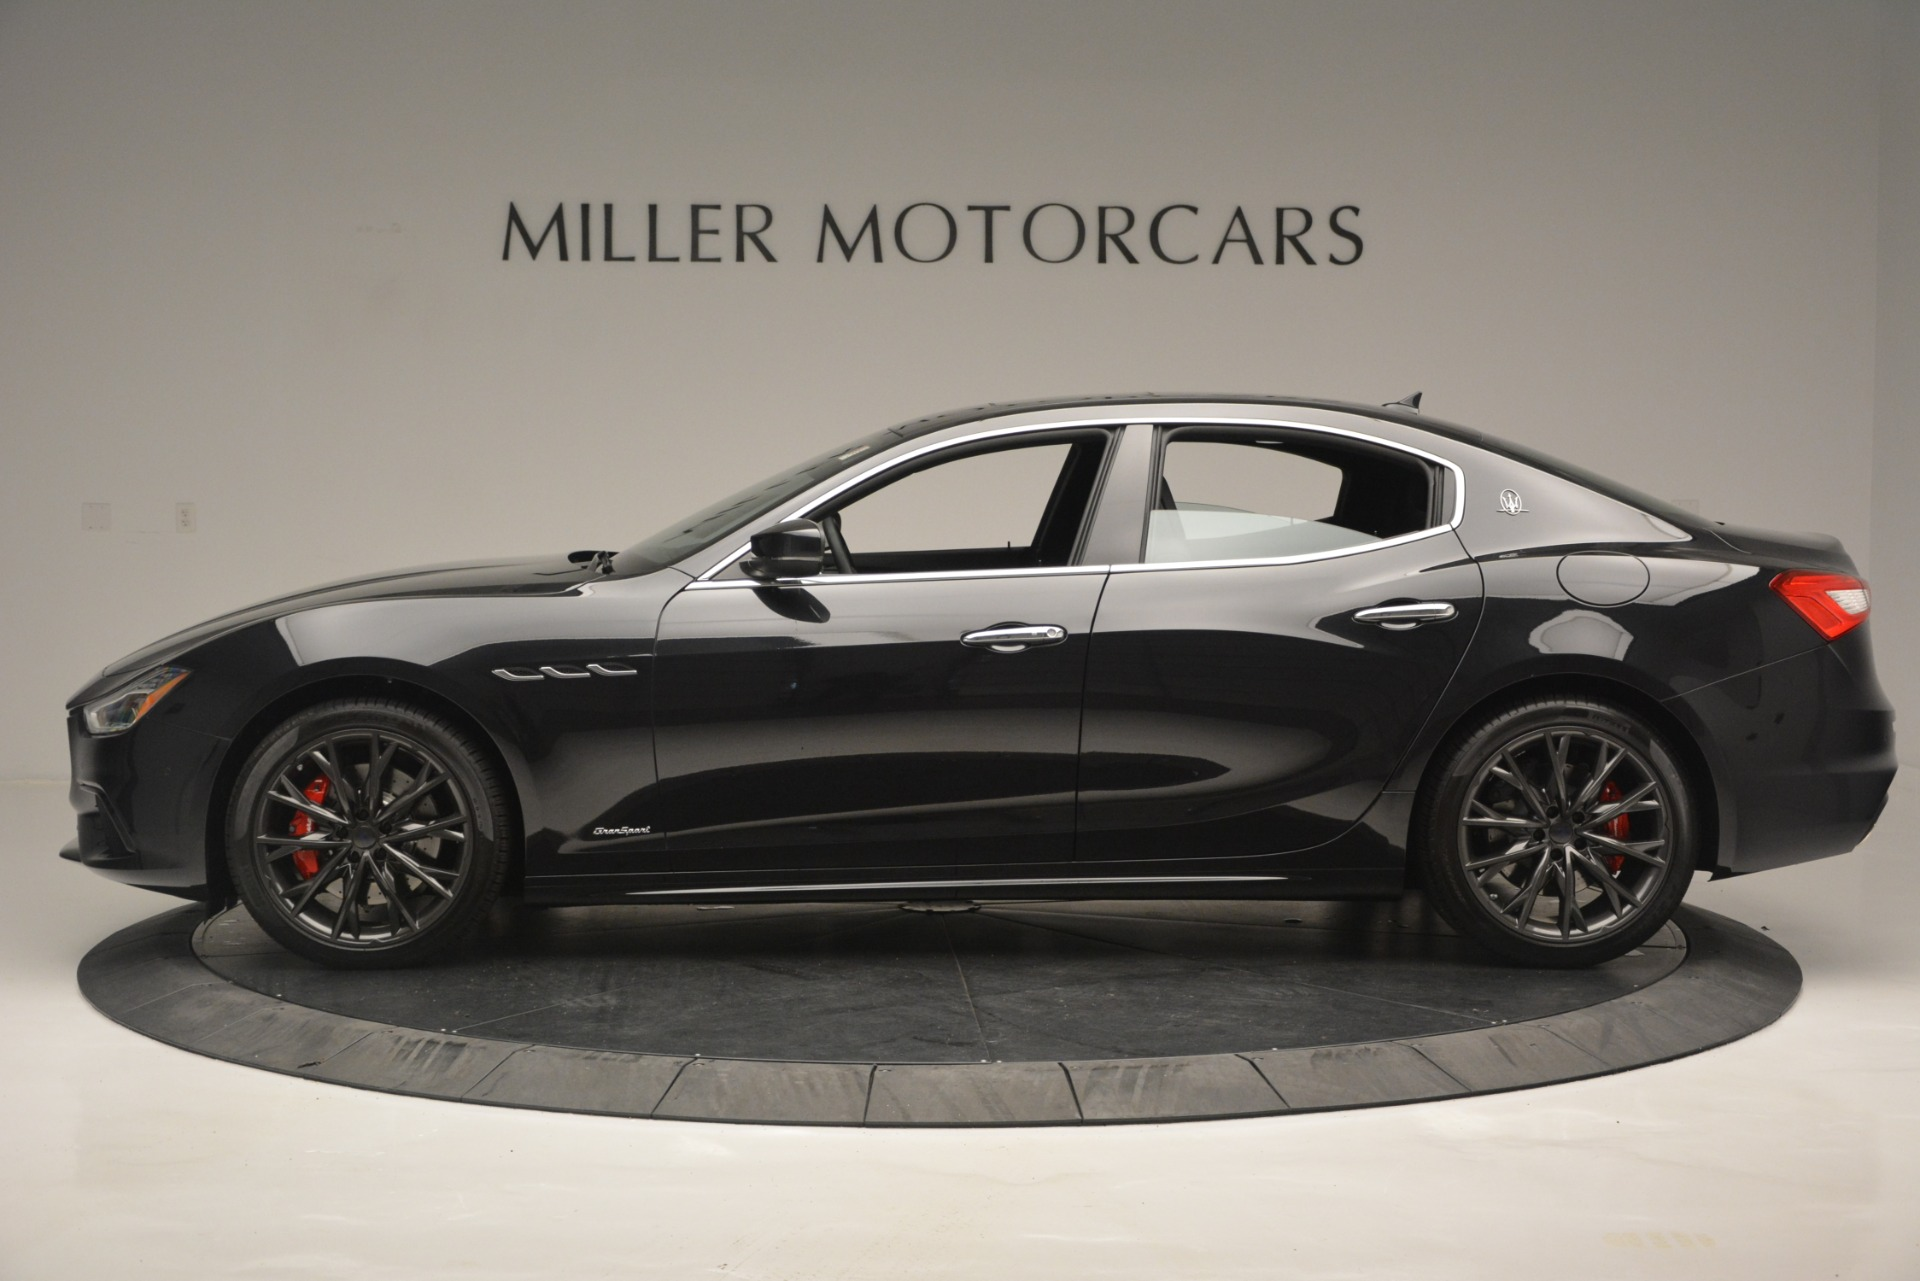 New 2019 Maserati Ghibli S Q4 GranSport For Sale In Westport, CT 2765_p3